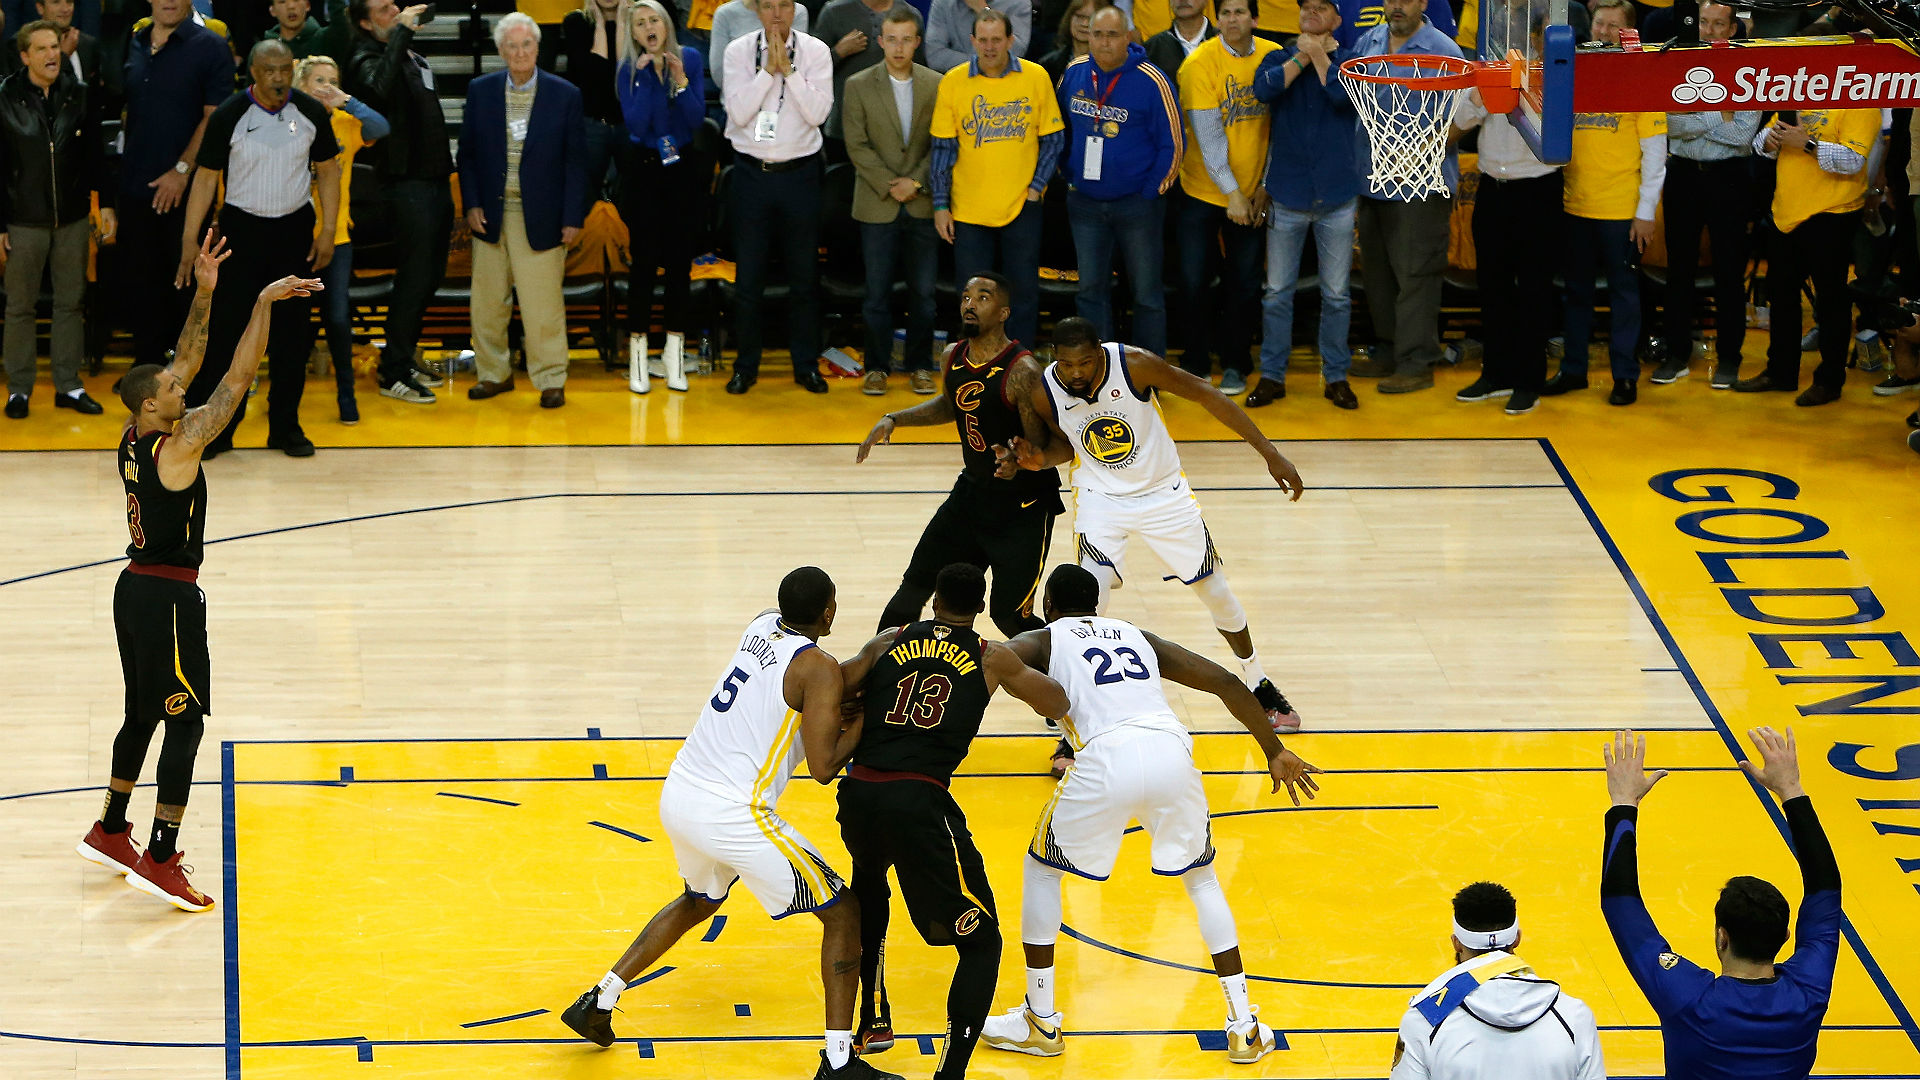 Curry Sets Finals 3-Point Record, Warriors Win Game 2 122-103